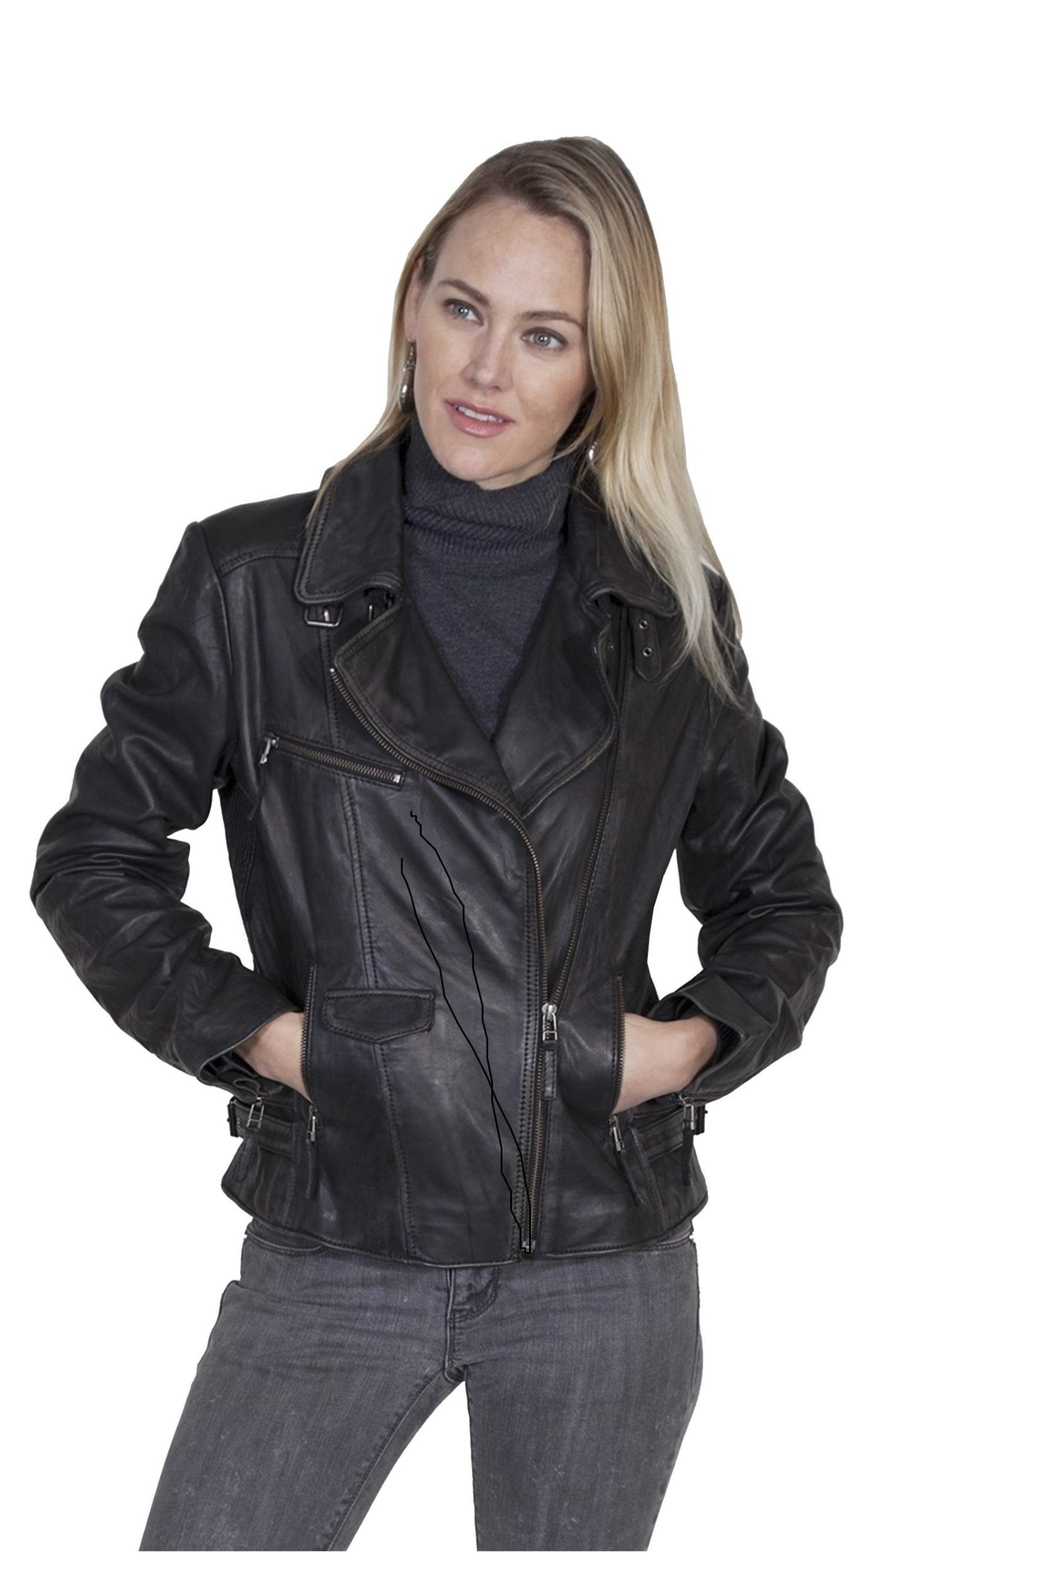 Scully Leather Moto Jacket From Saratoga By Laura M Shoptiques